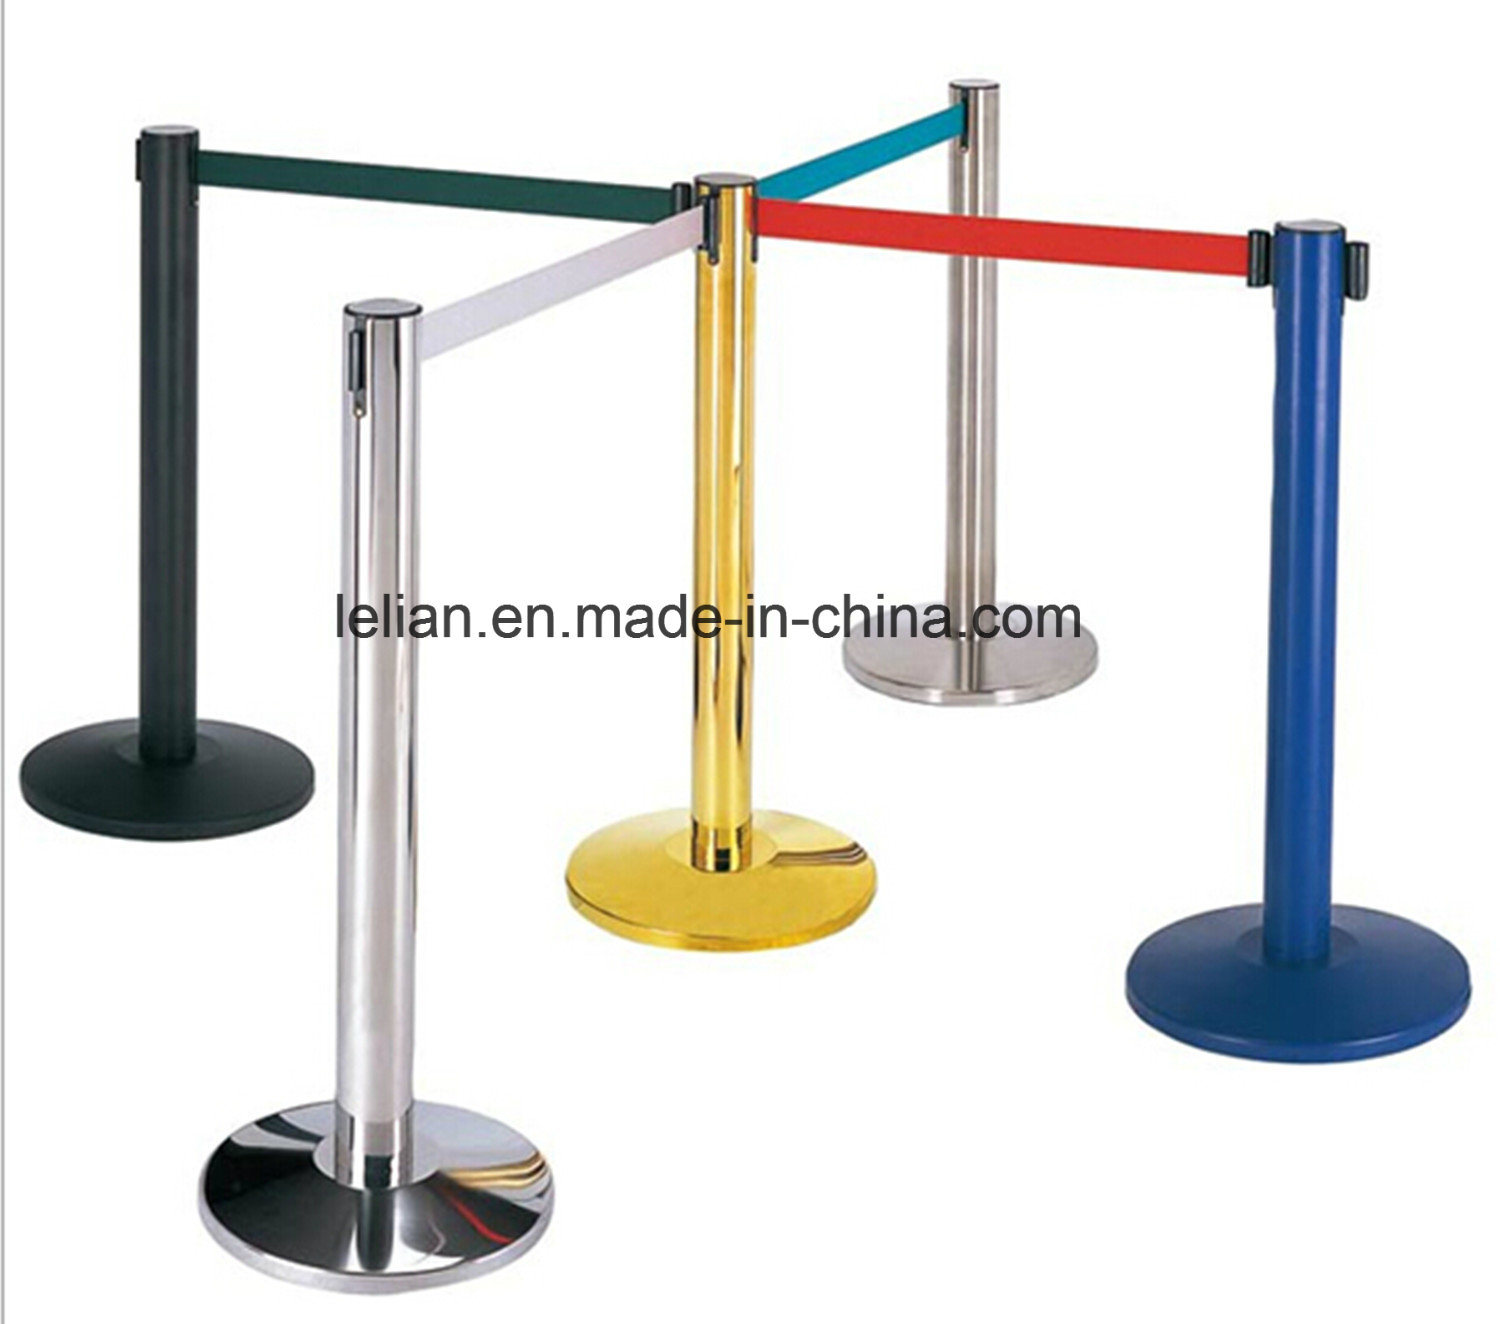 Customize Queue Rope Barrier Pole (LL-RP001)